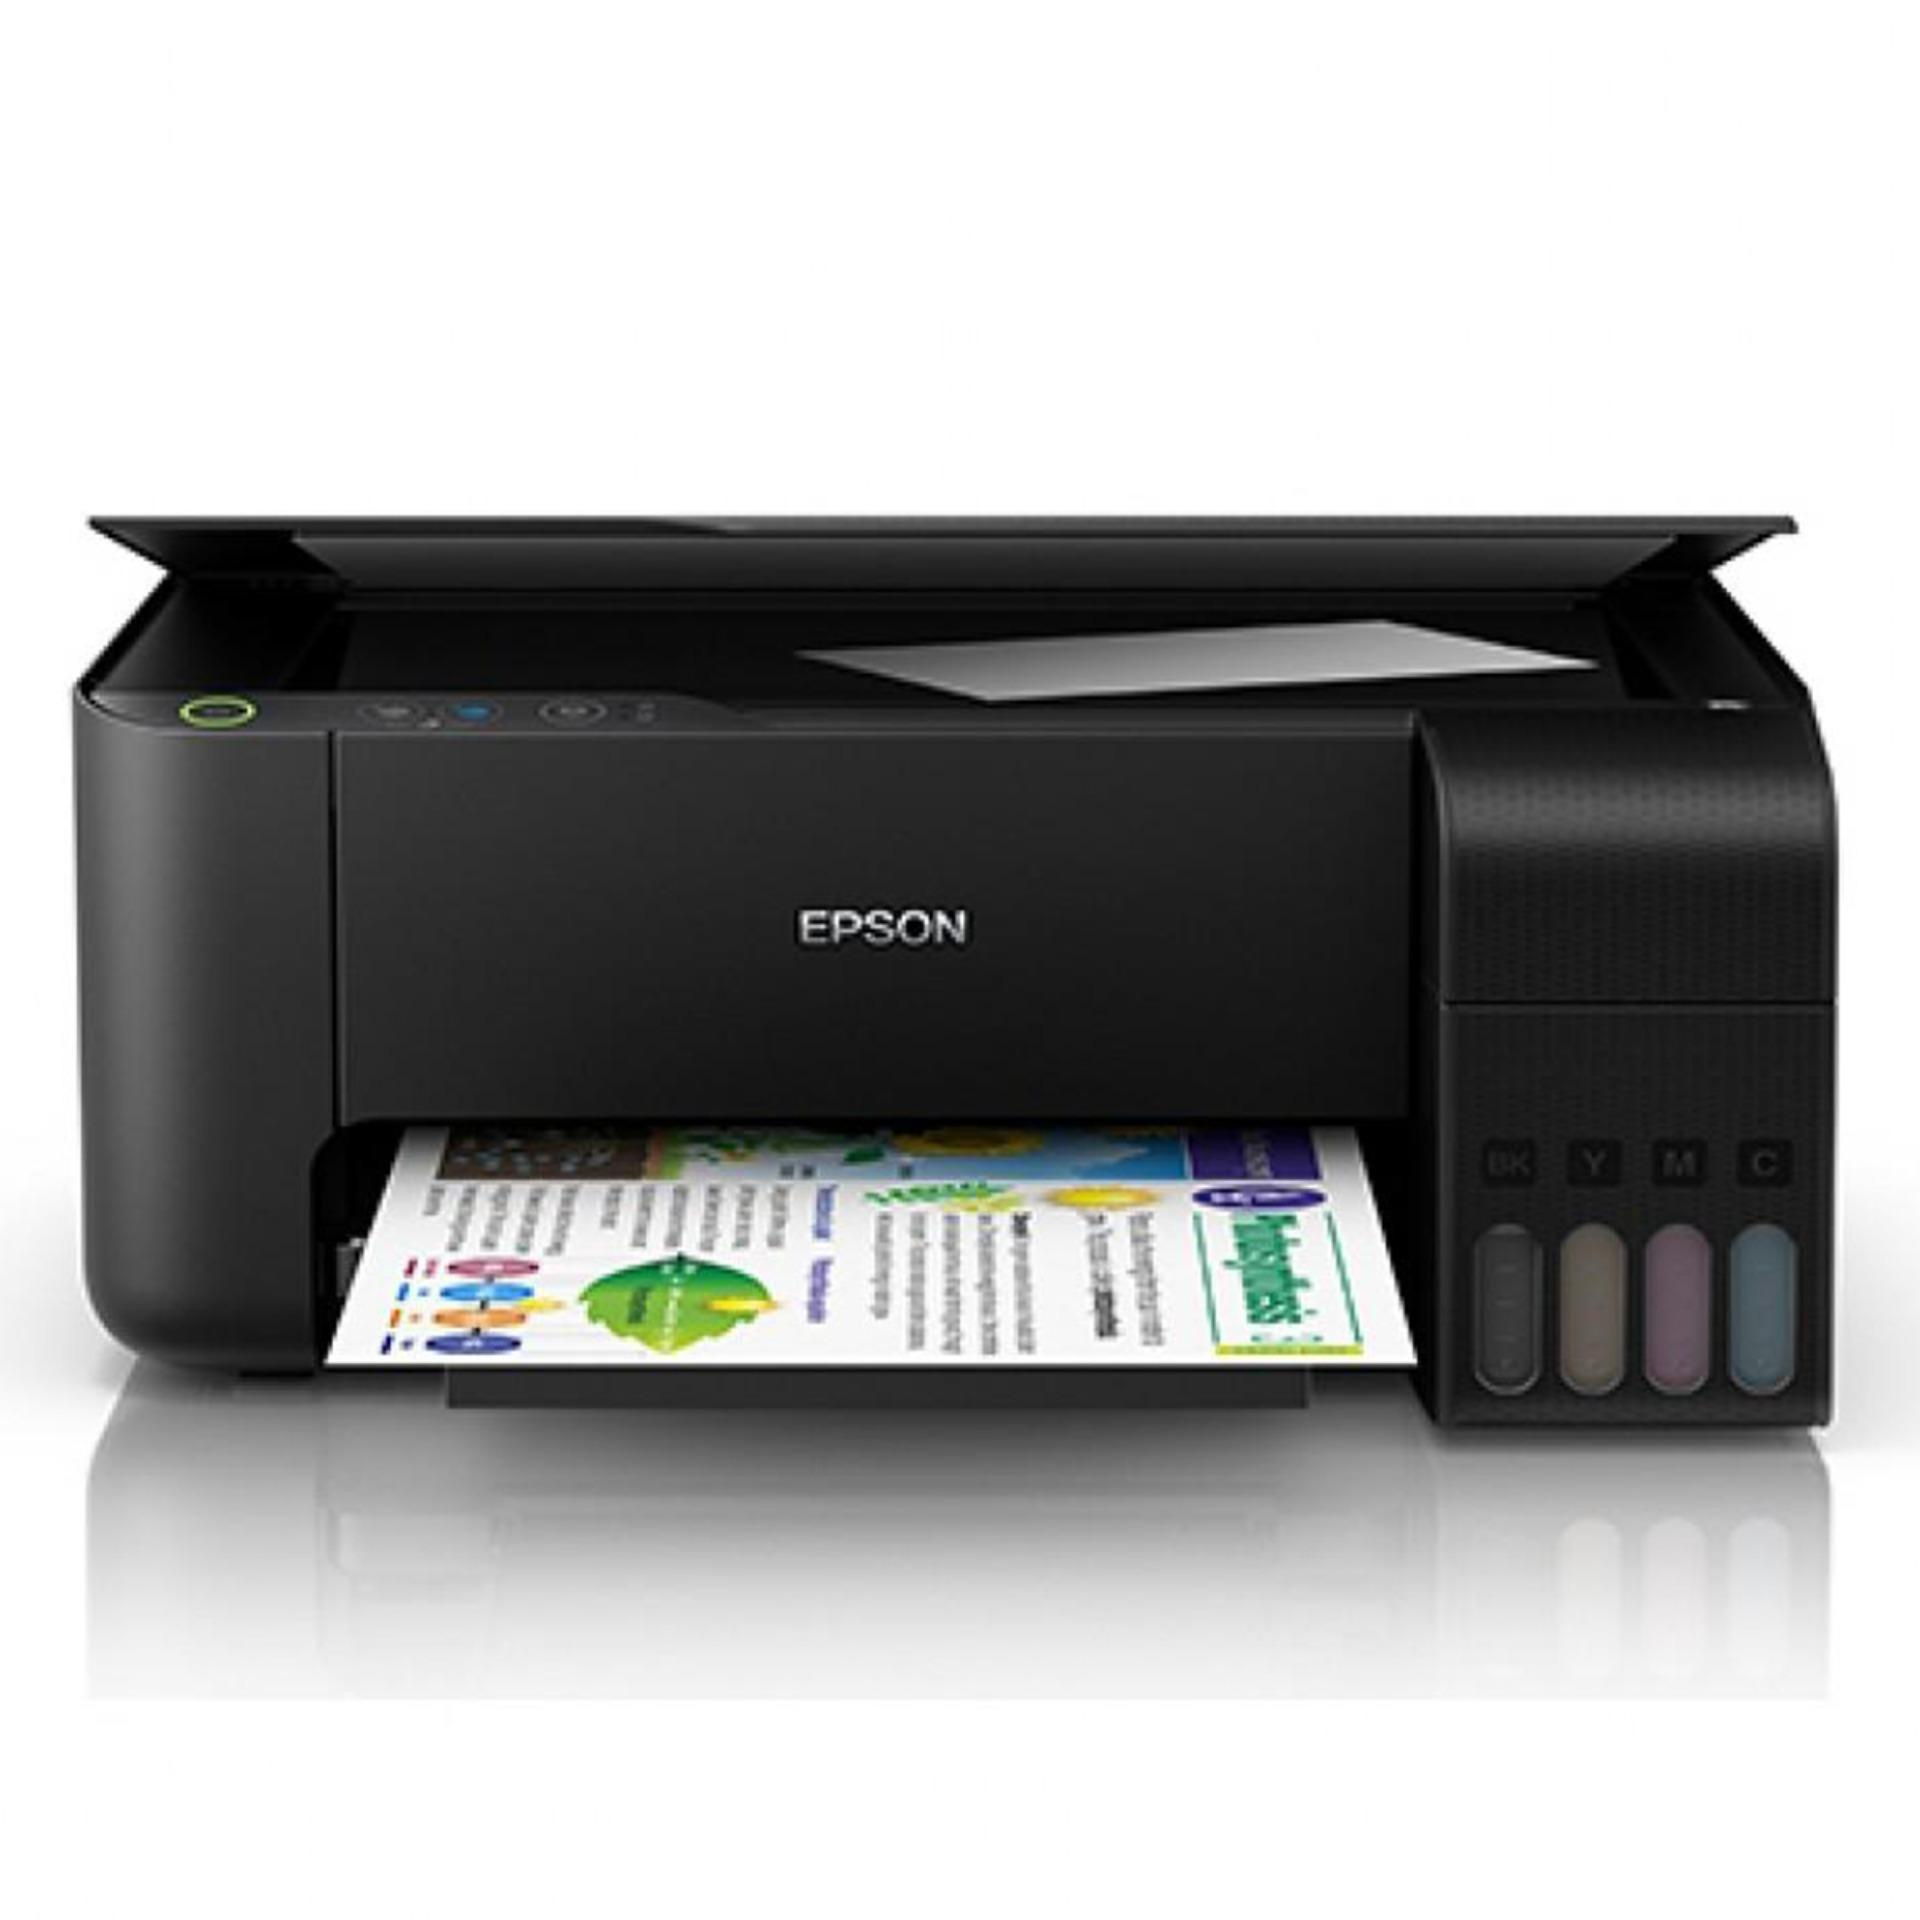 EPSON RX560 SCANNER DRIVER DOWNLOAD (2019)